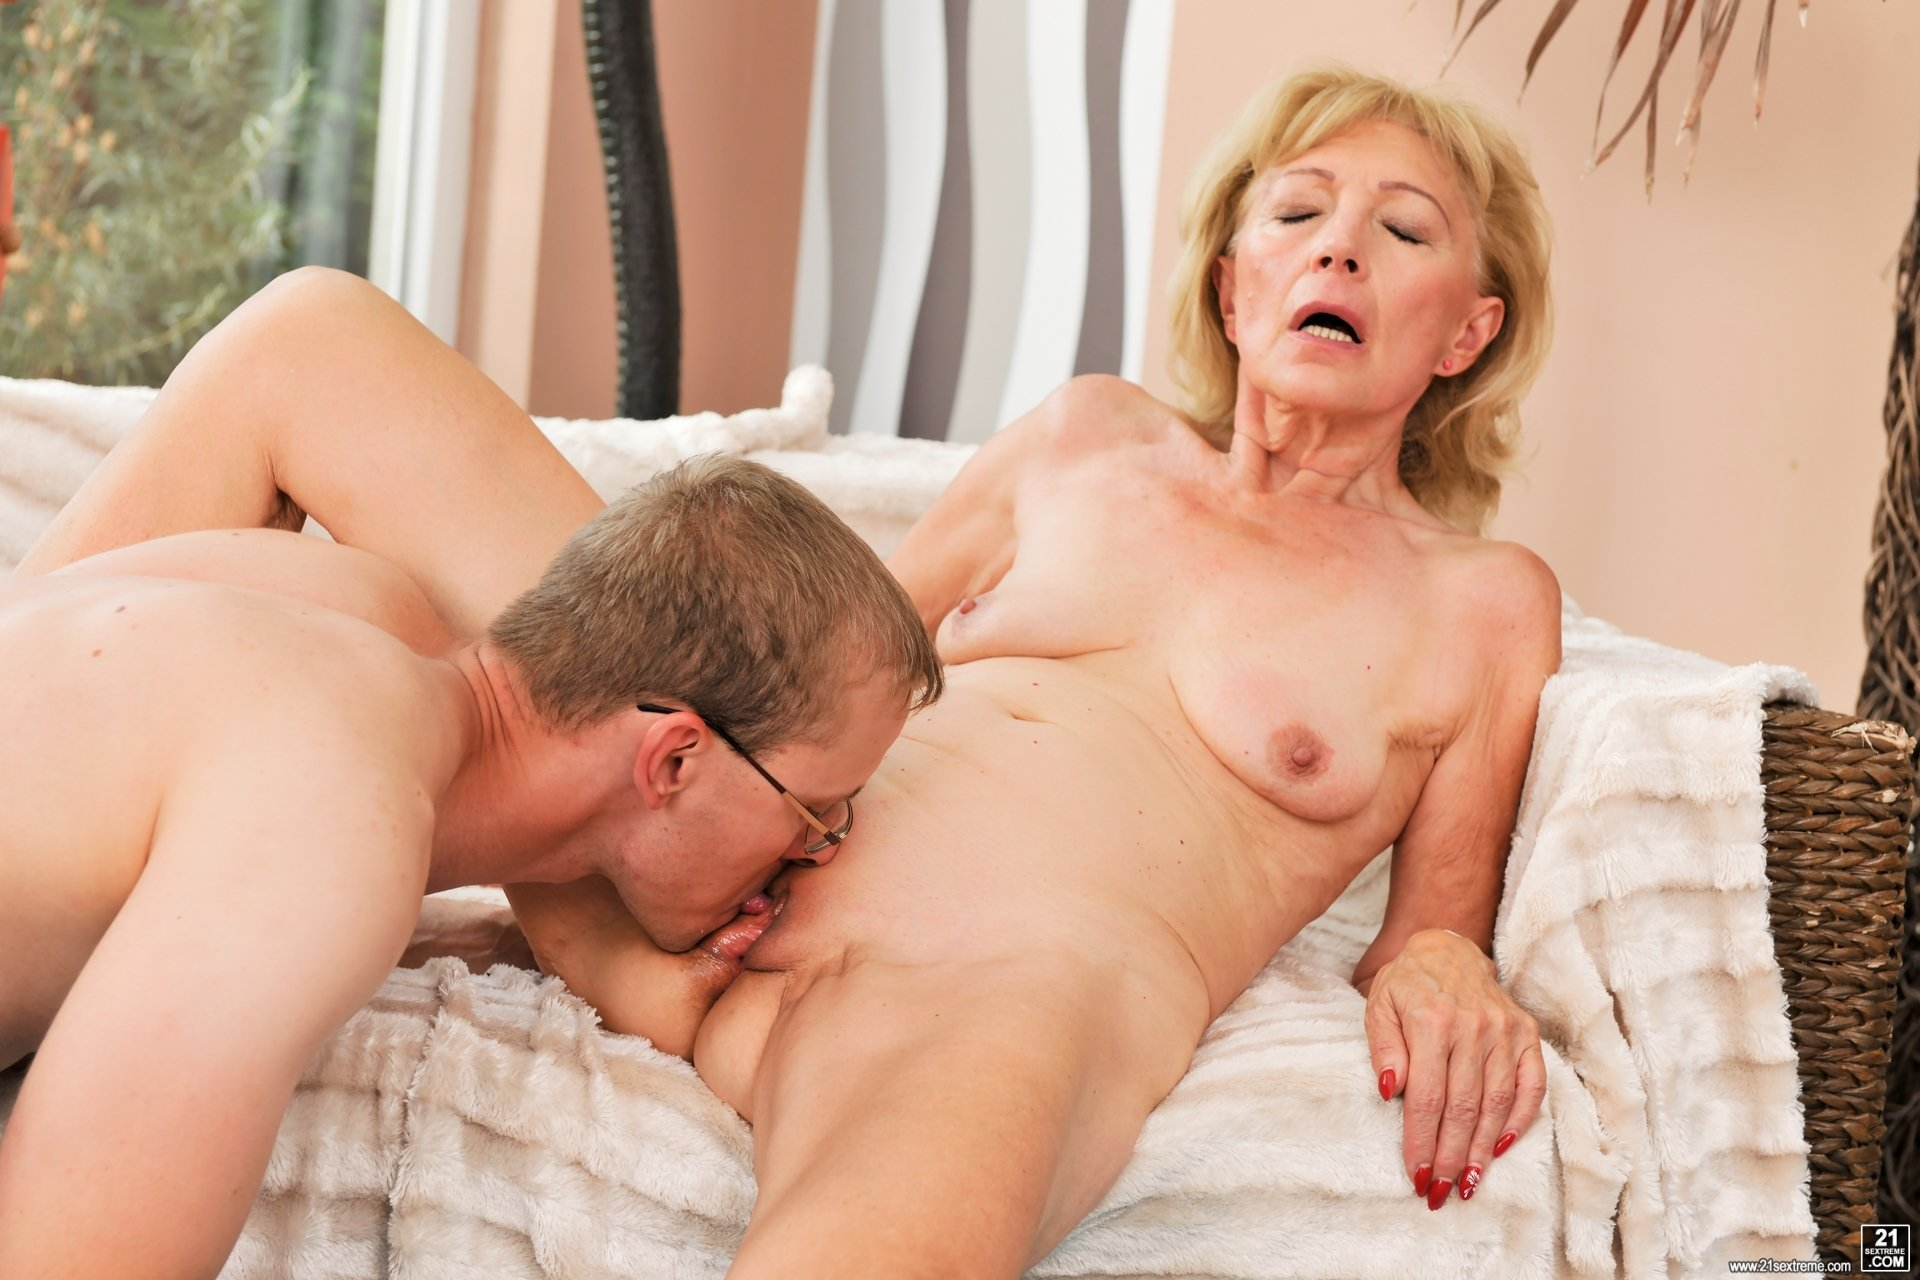 Wife does anything shes told big fat butt mom